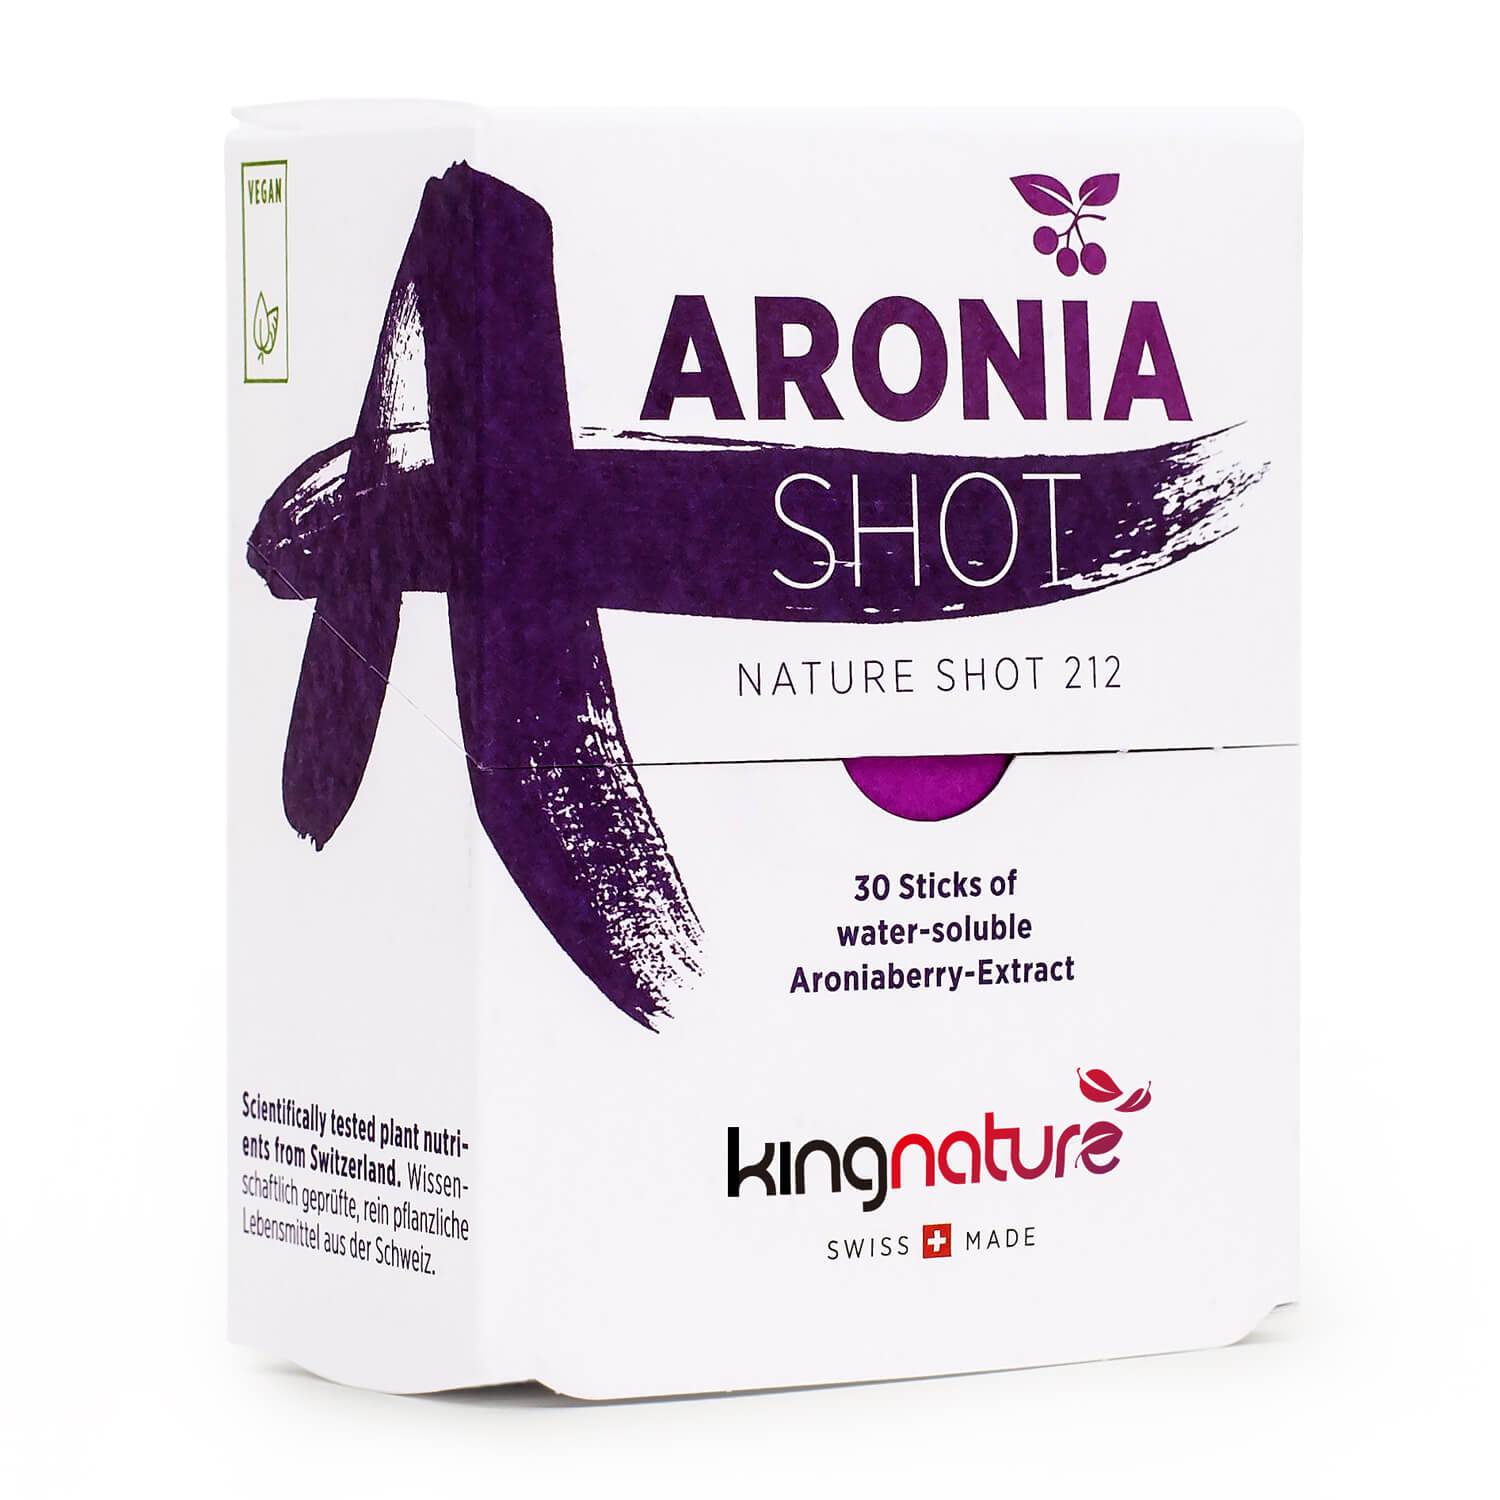 Kingnature Aronia Shot